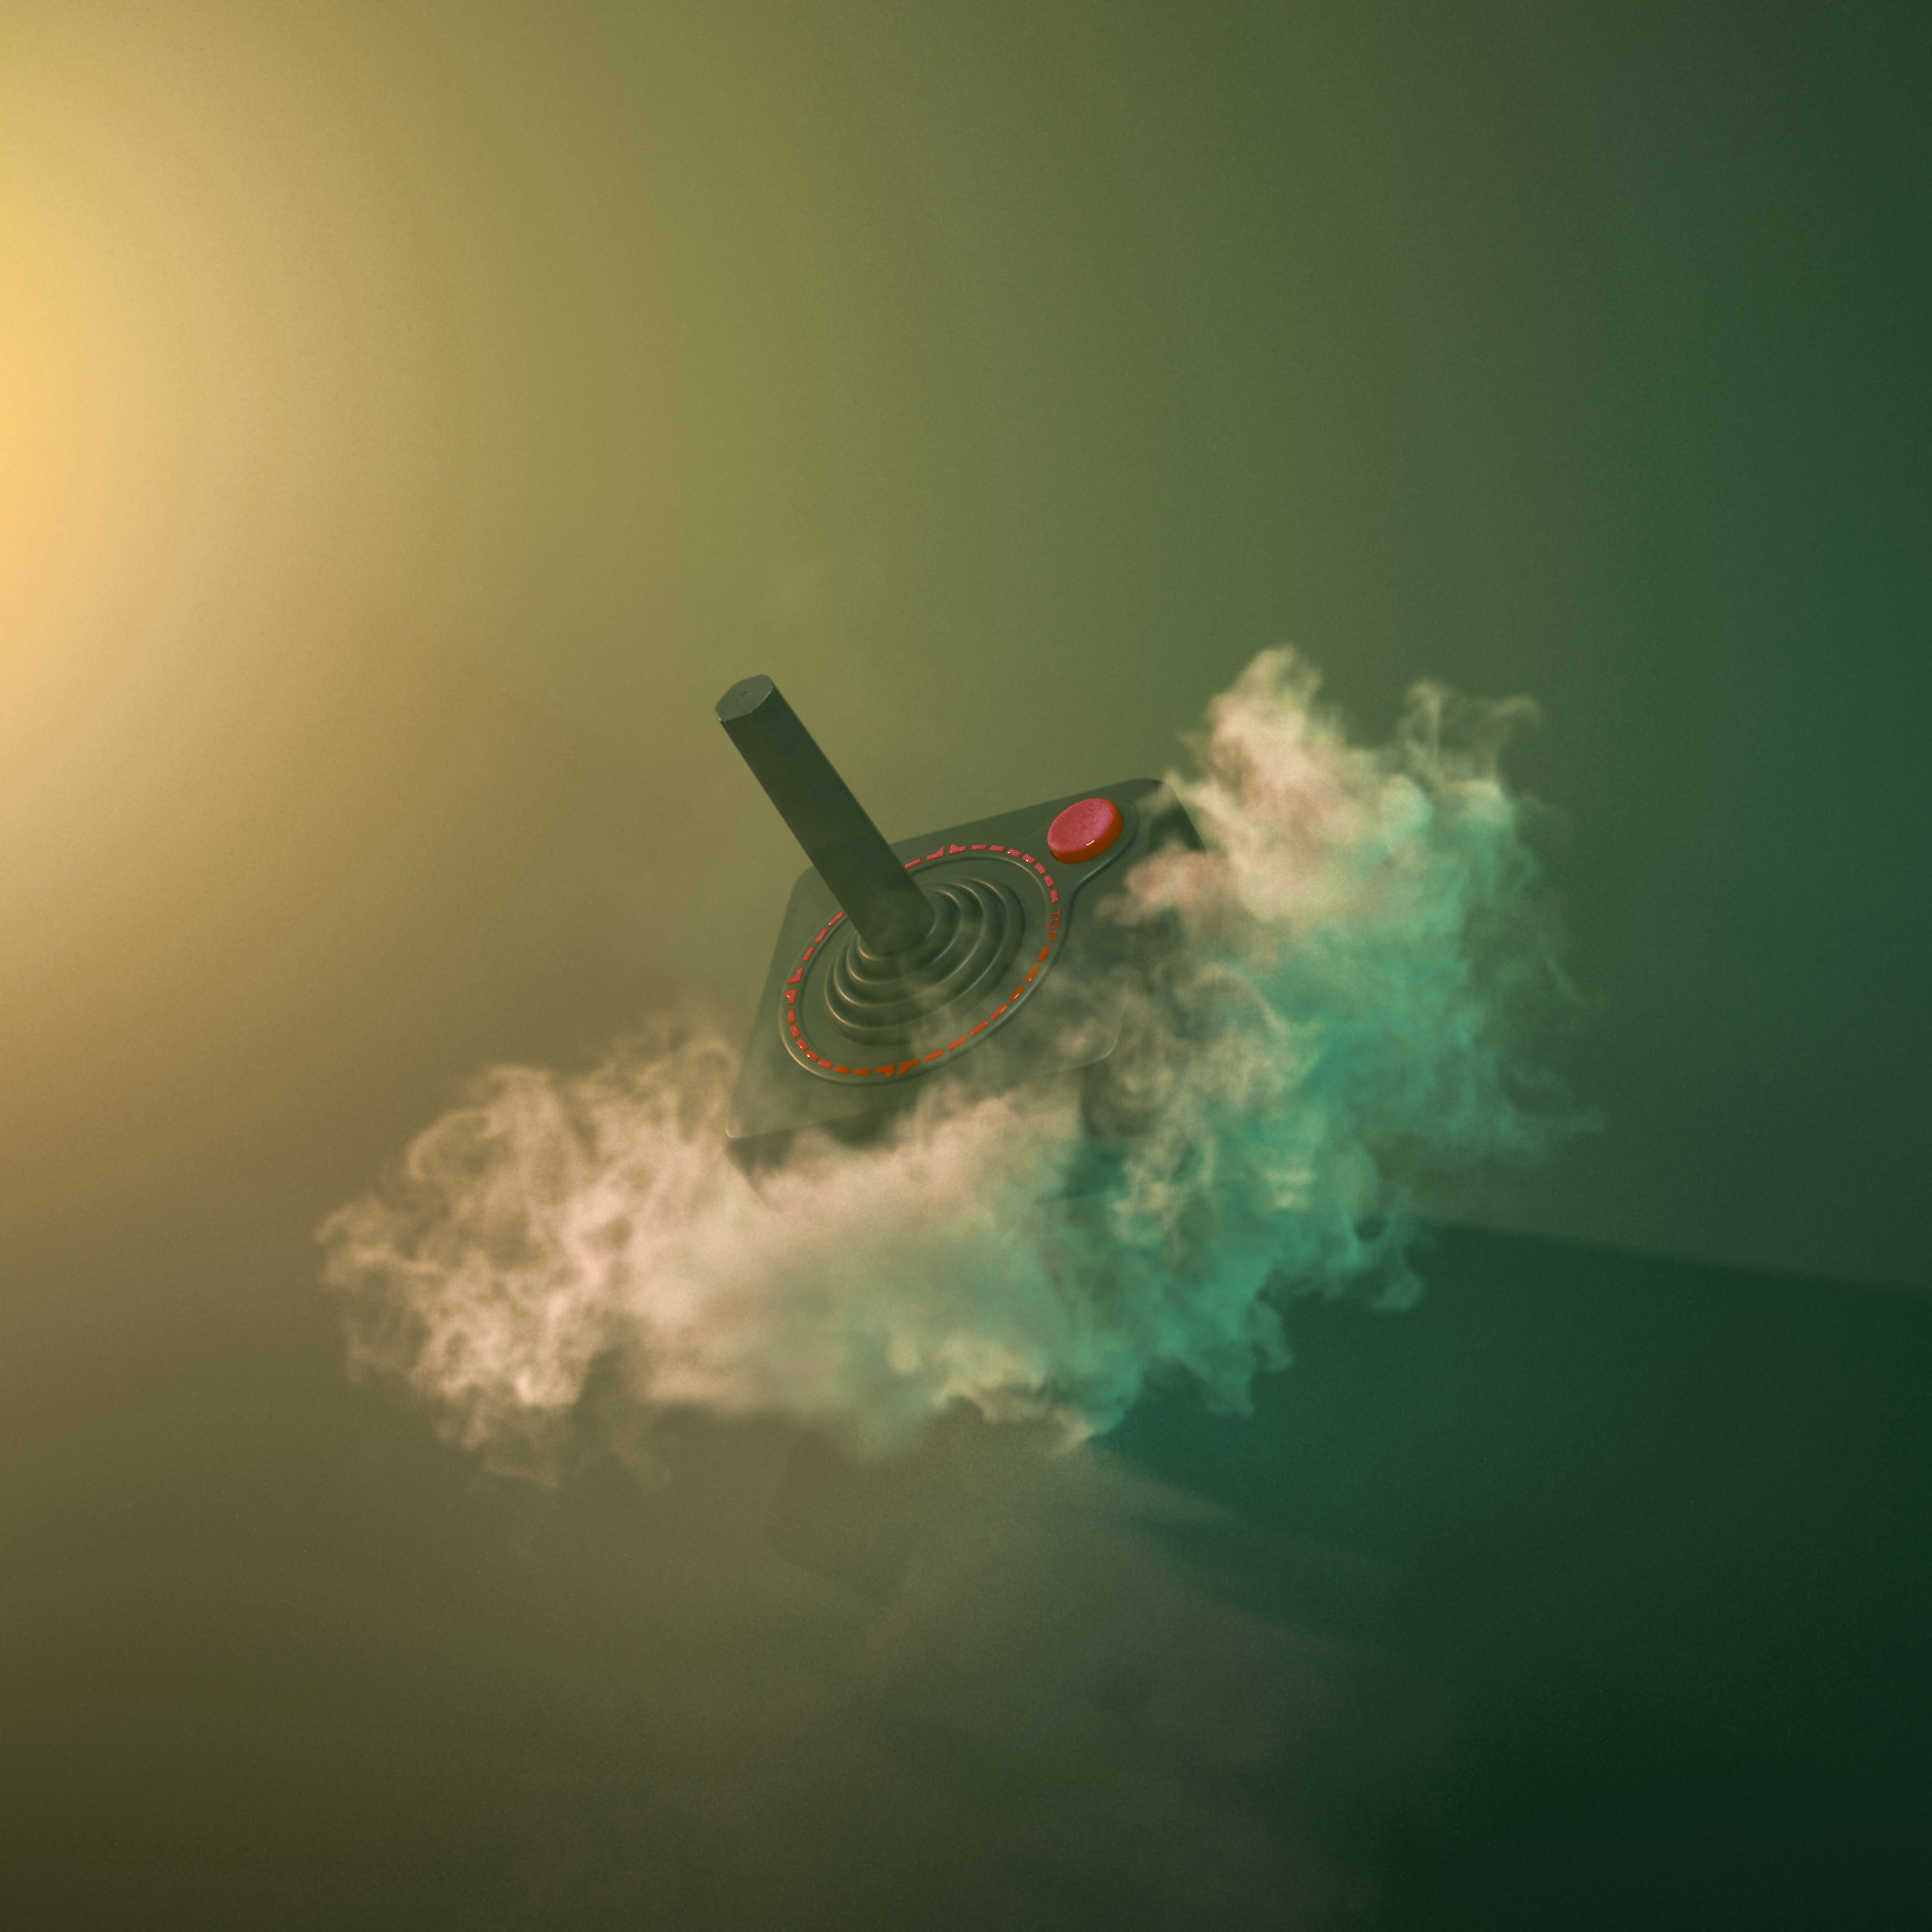 UIW_Smoke.Redshift_ROP1.0050_Via_Redshift.jpg